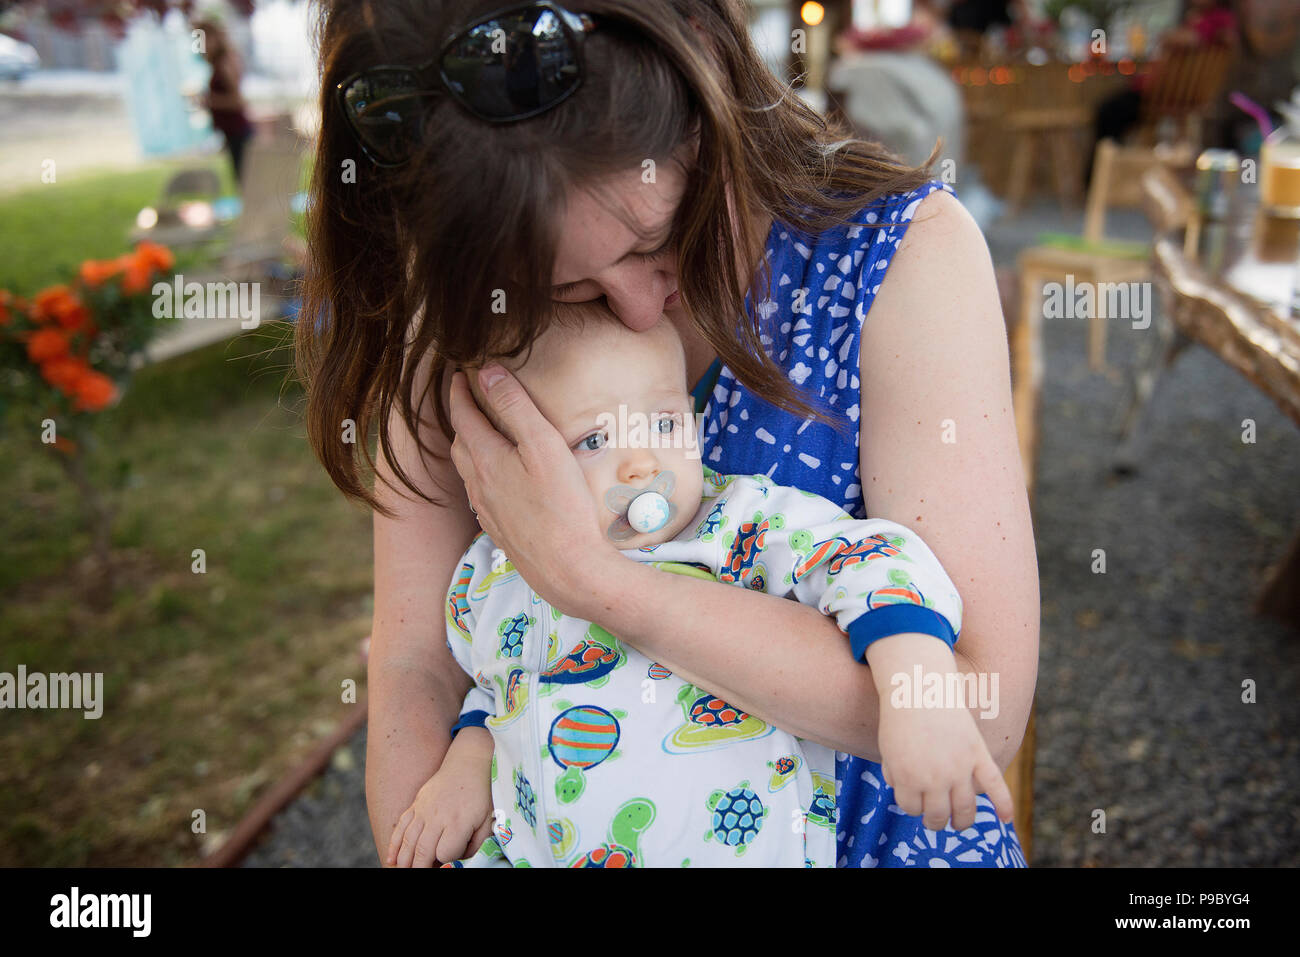 A mother embracing her one year old child. - Stock Image